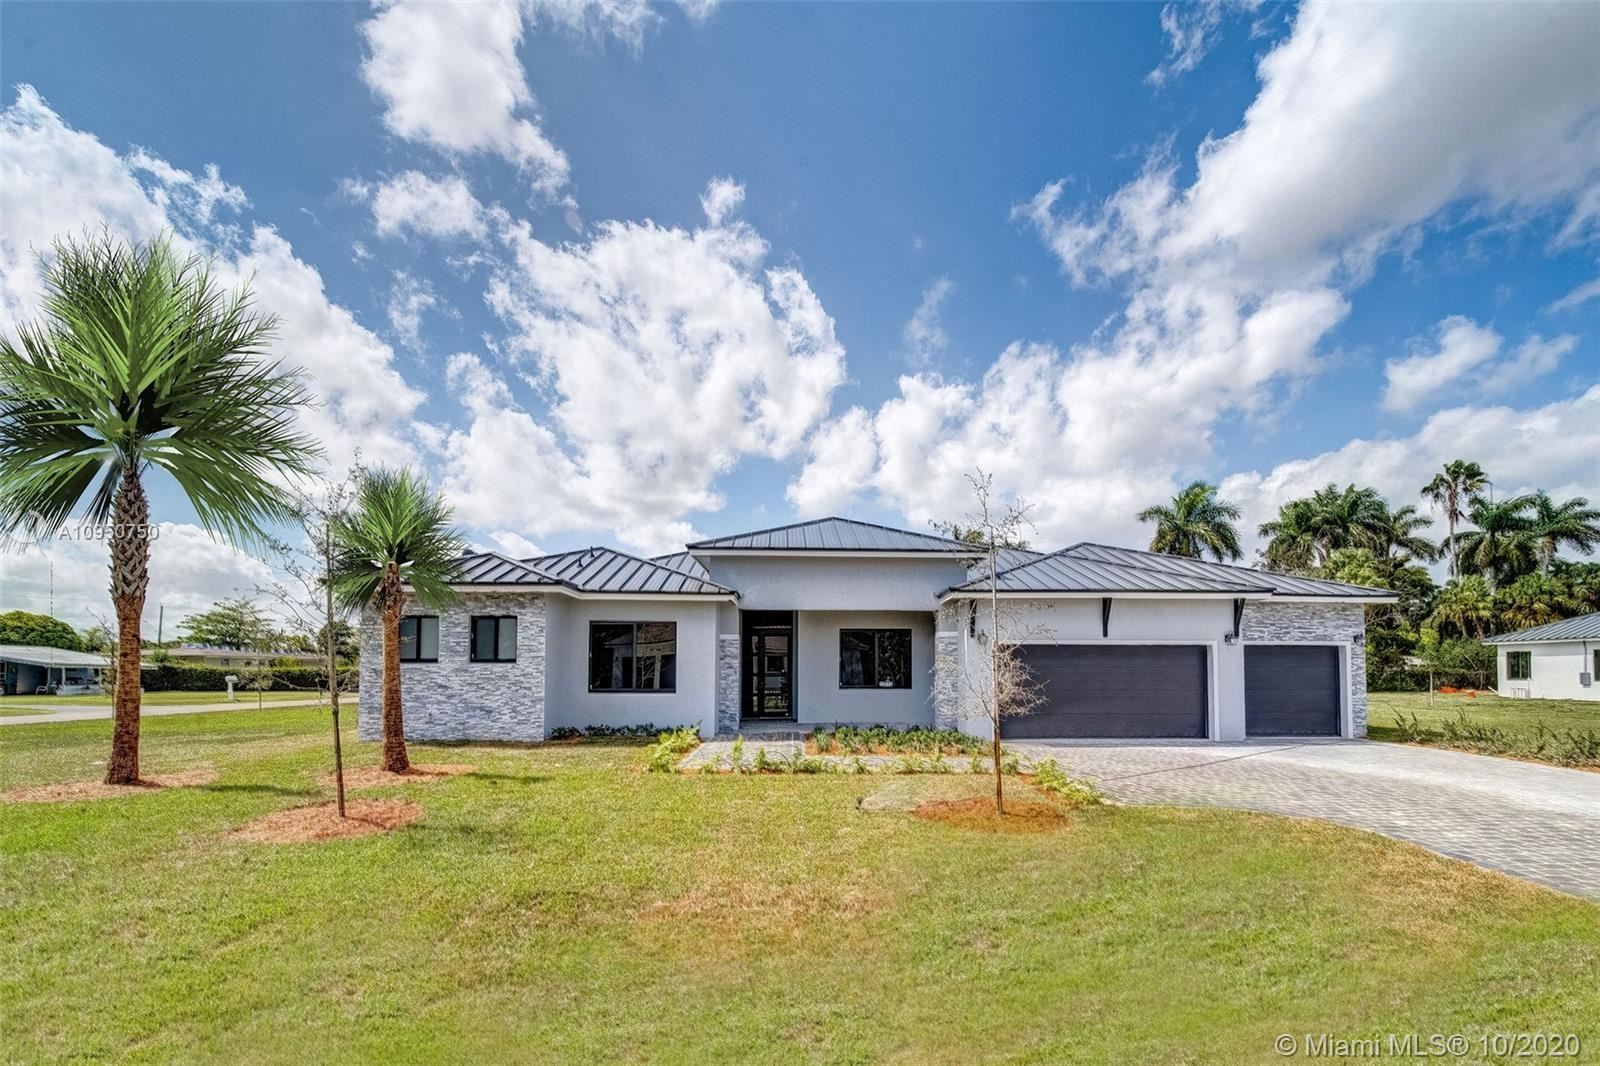 28955 SW 189 AVE, Homestead, FL 33030 - MLS#: A10950750